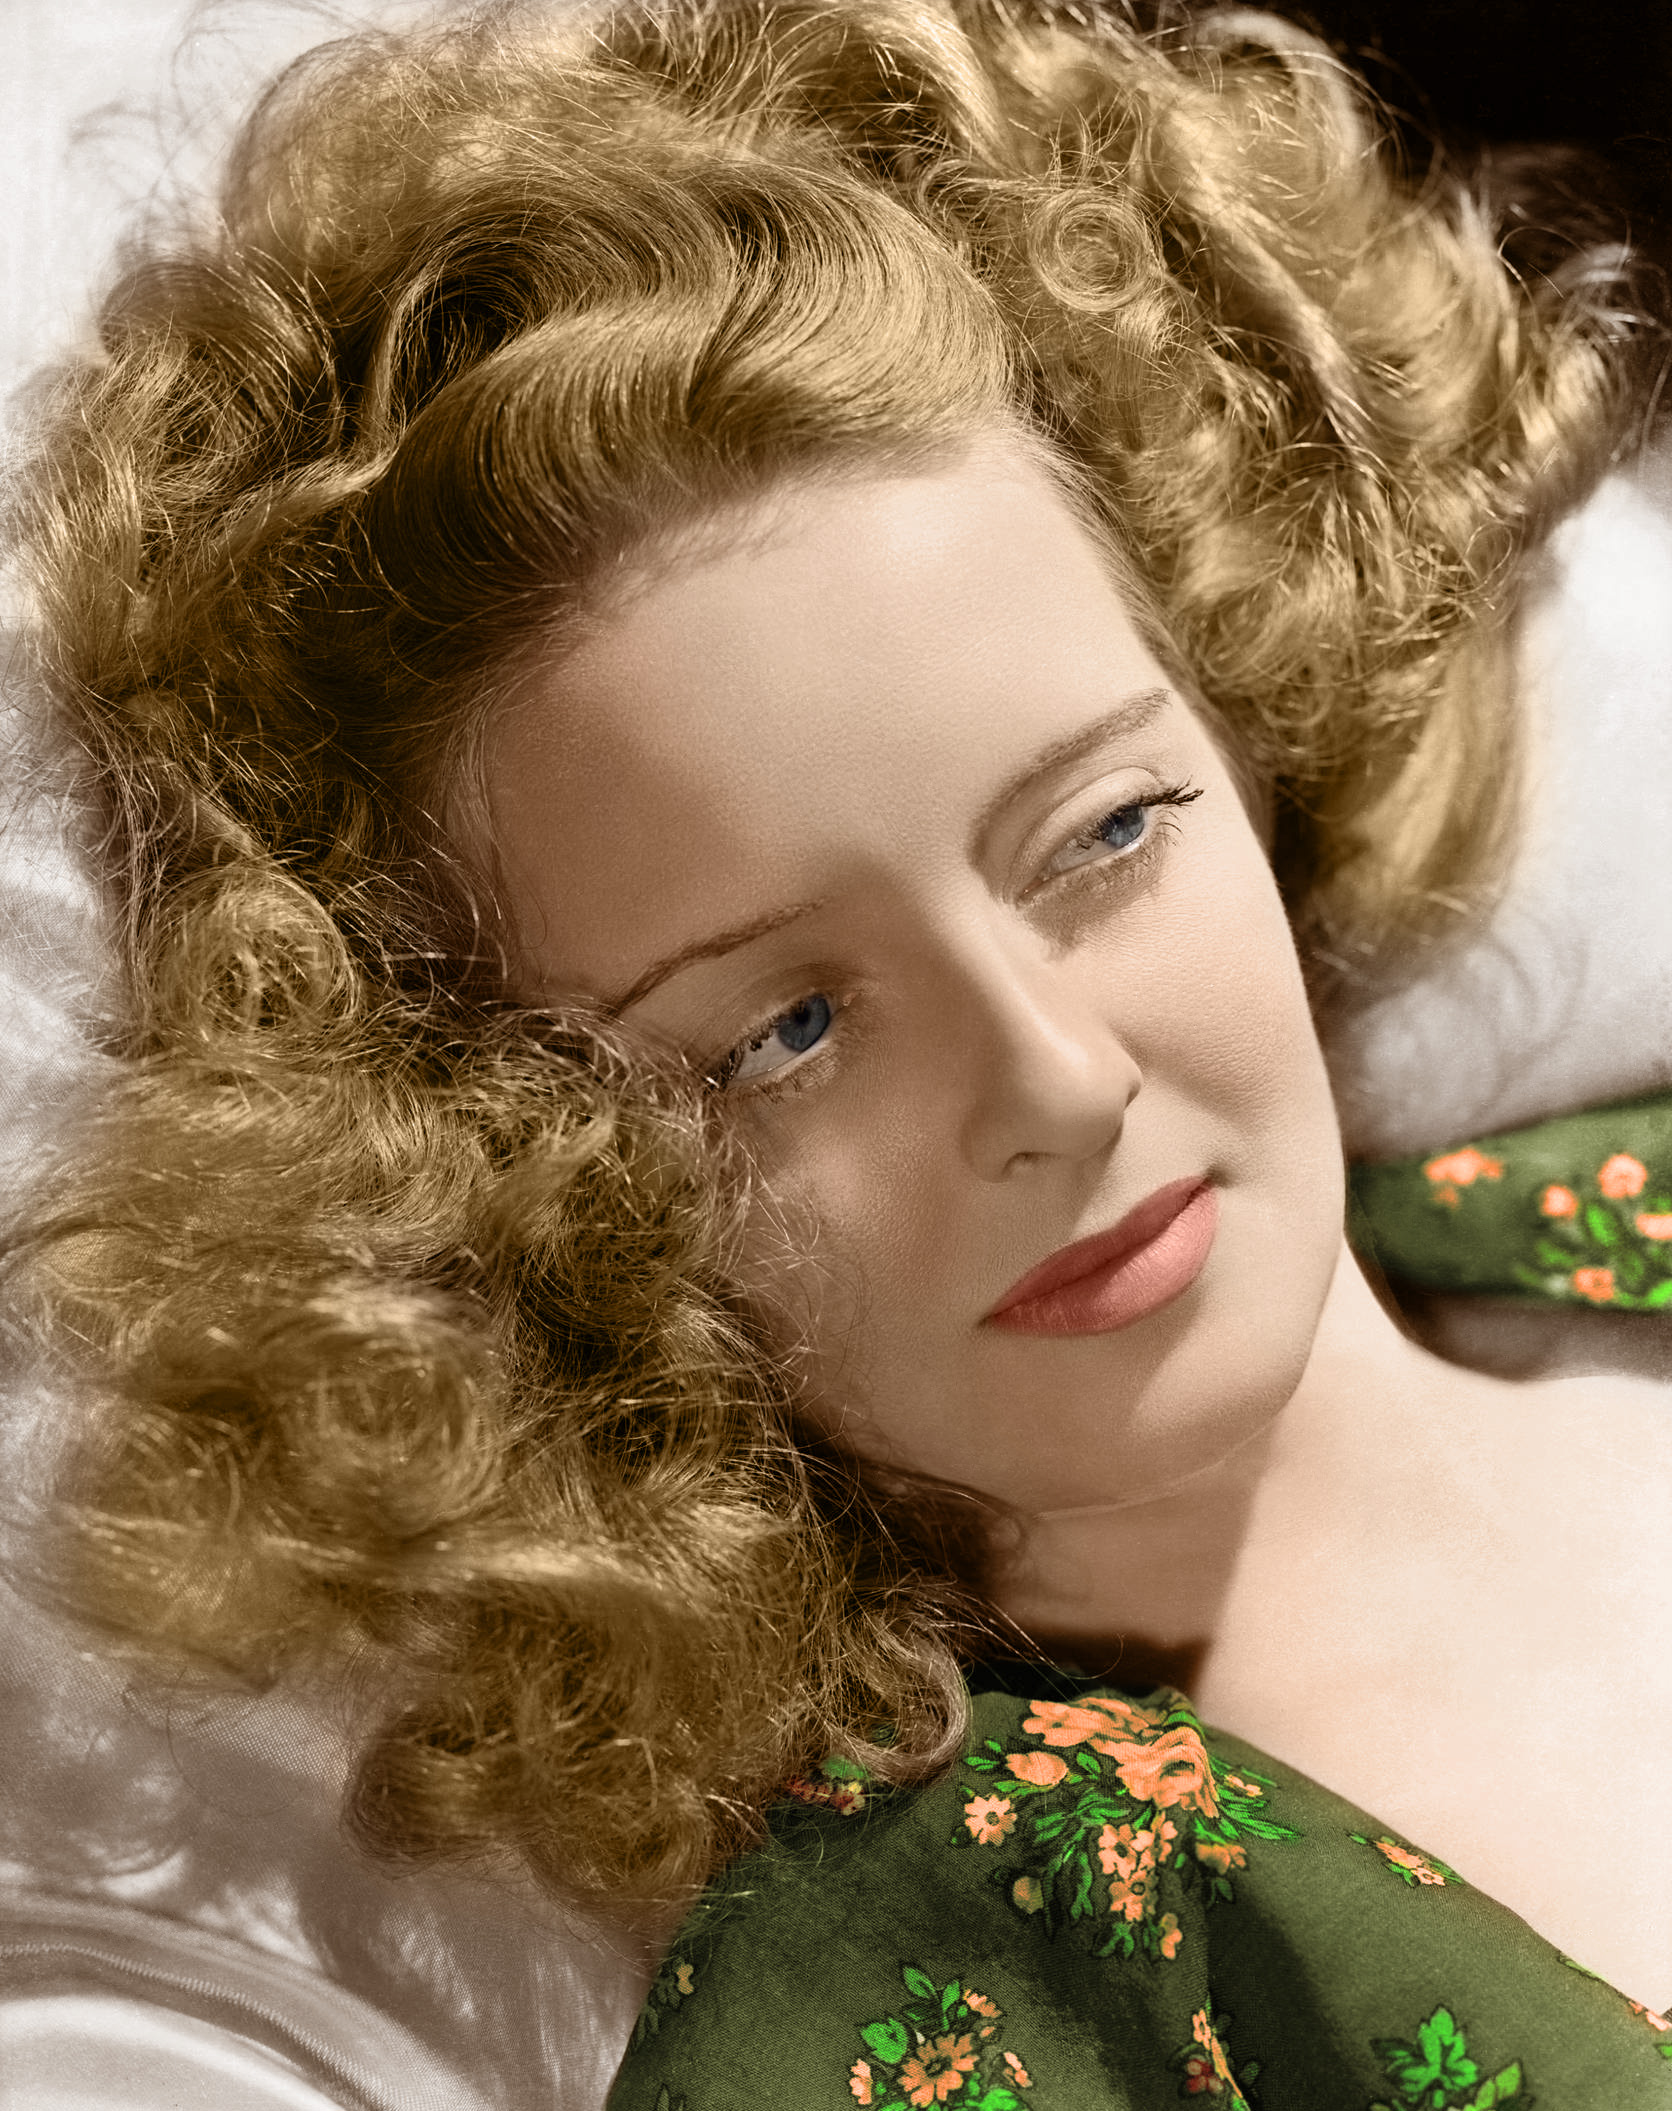 Bette Davis Height Weight Age Bra Size Affairs Body Stats